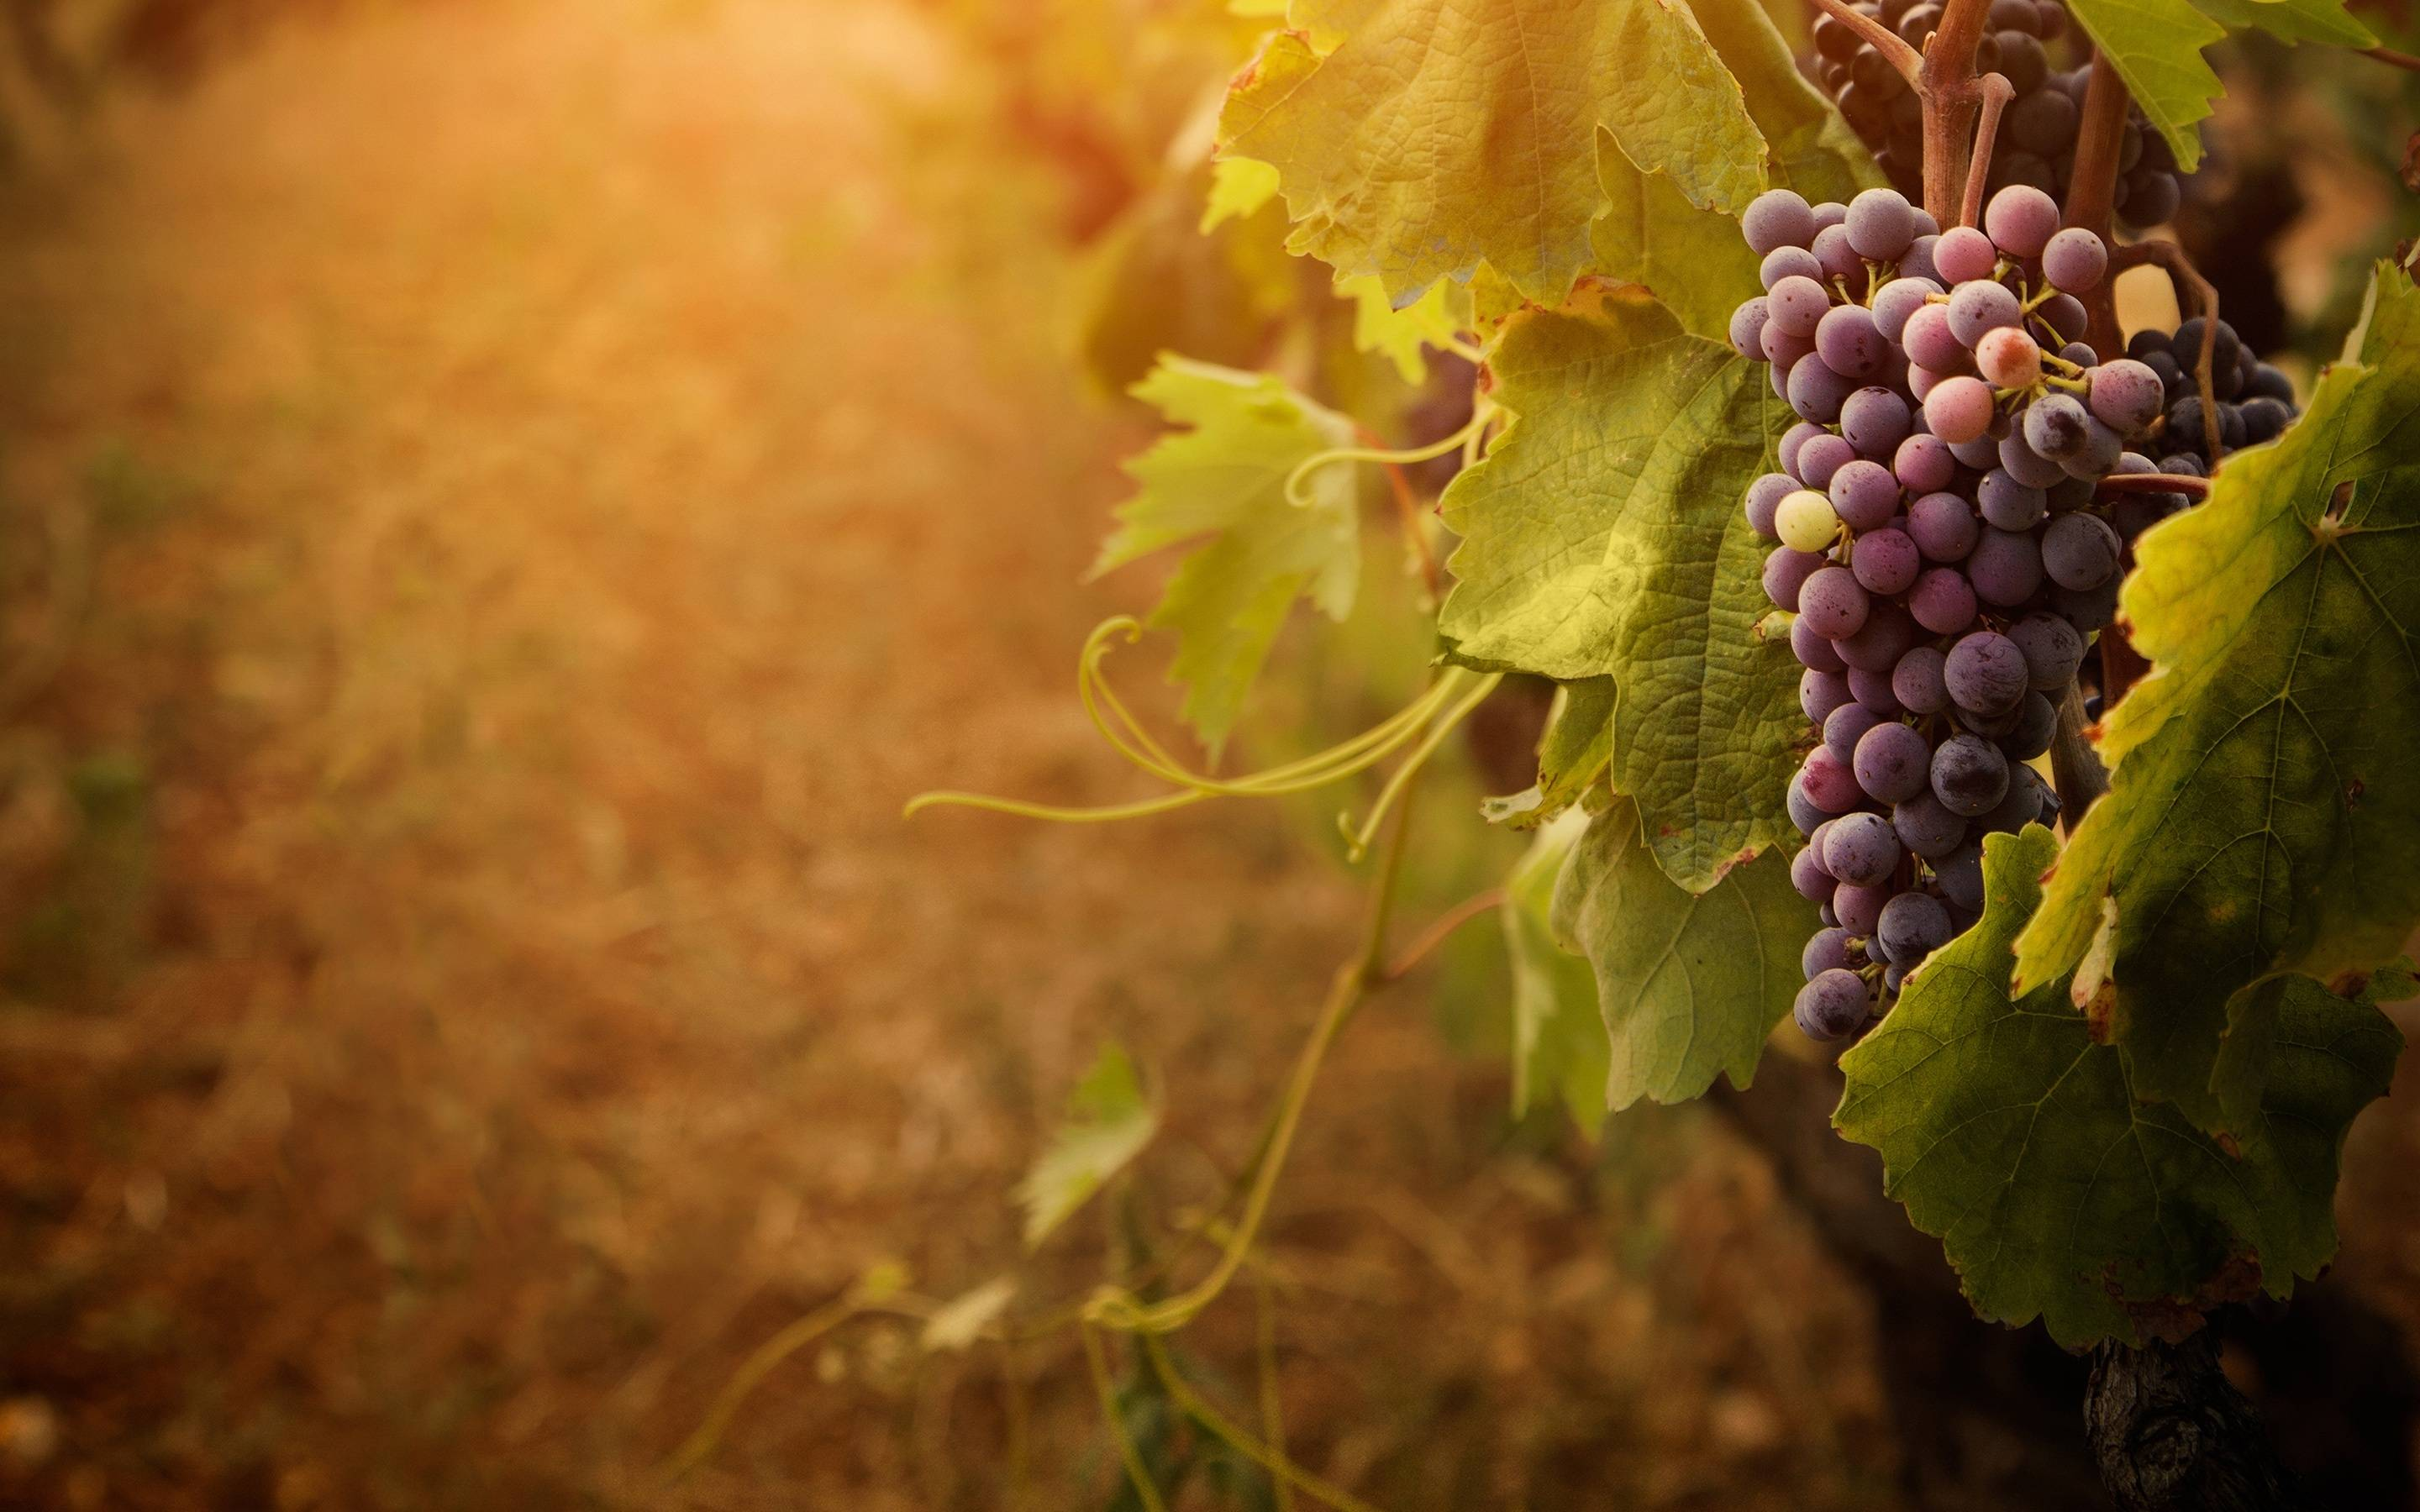 Wallpapers Grapes 2880x1800